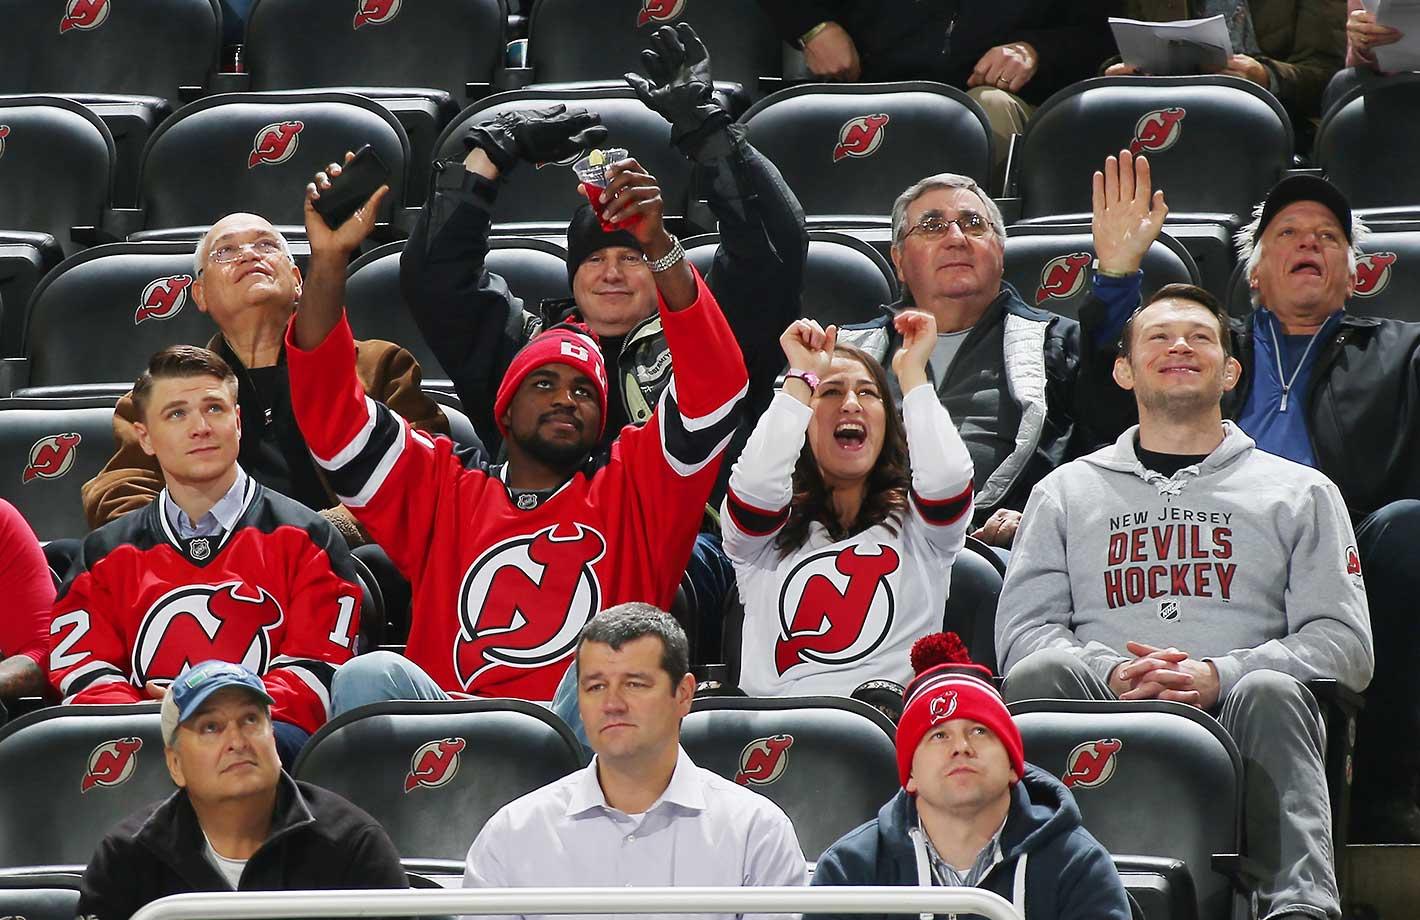 Chris Wade, Corey Anderson, Jessica Eye and Forrest Griffin of the UFC take in the game between the New Jersey Devils and the Ottawa Senators at the Prudential Center in Newark.